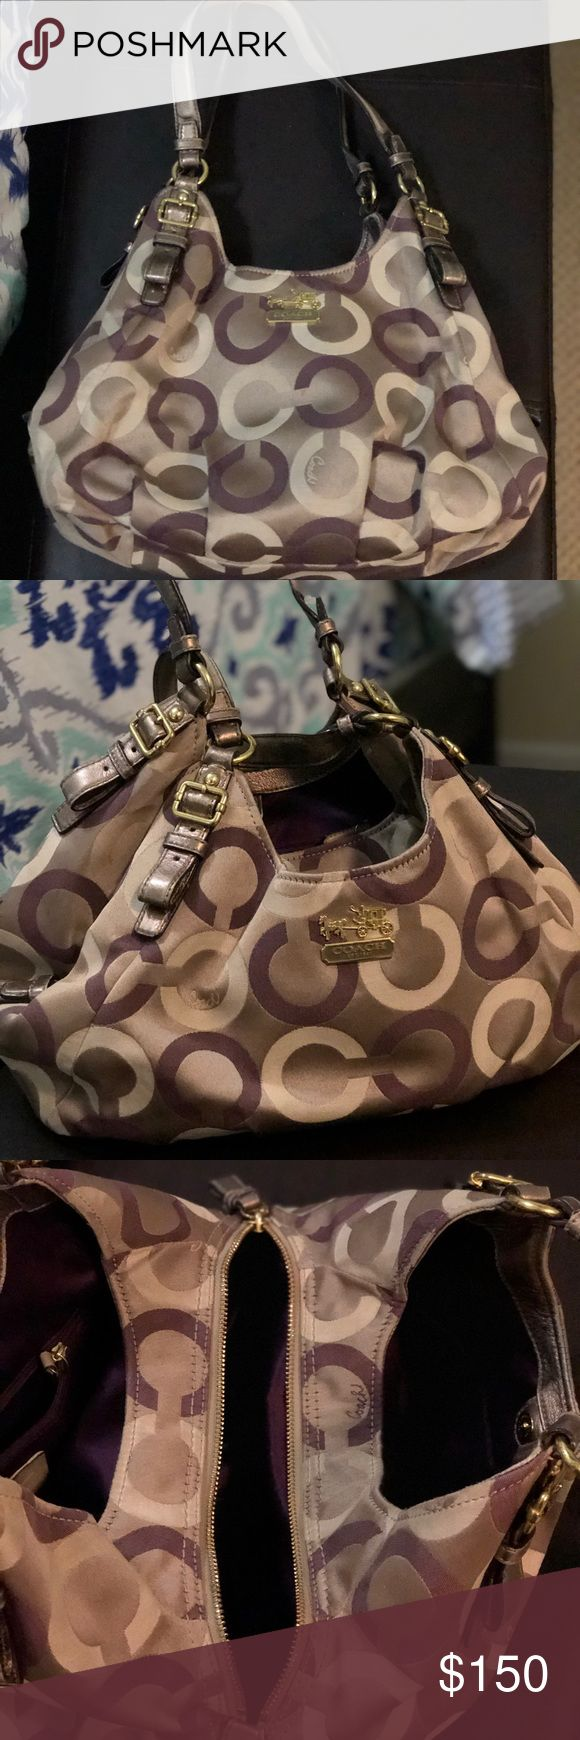 Coach Madison Khaki Multi Maggie Shoulder Bag I got this in 2012, and it's been a great bag over the years. There is some wear and tear and staining inside and at the bottom that you can try to get out. The bag still looks good despite the normal wear and tear. It matches with most outfits and it's super spacious. The style is #19844 and UPC is 886382182889. Coach Bags Shoulder Bags